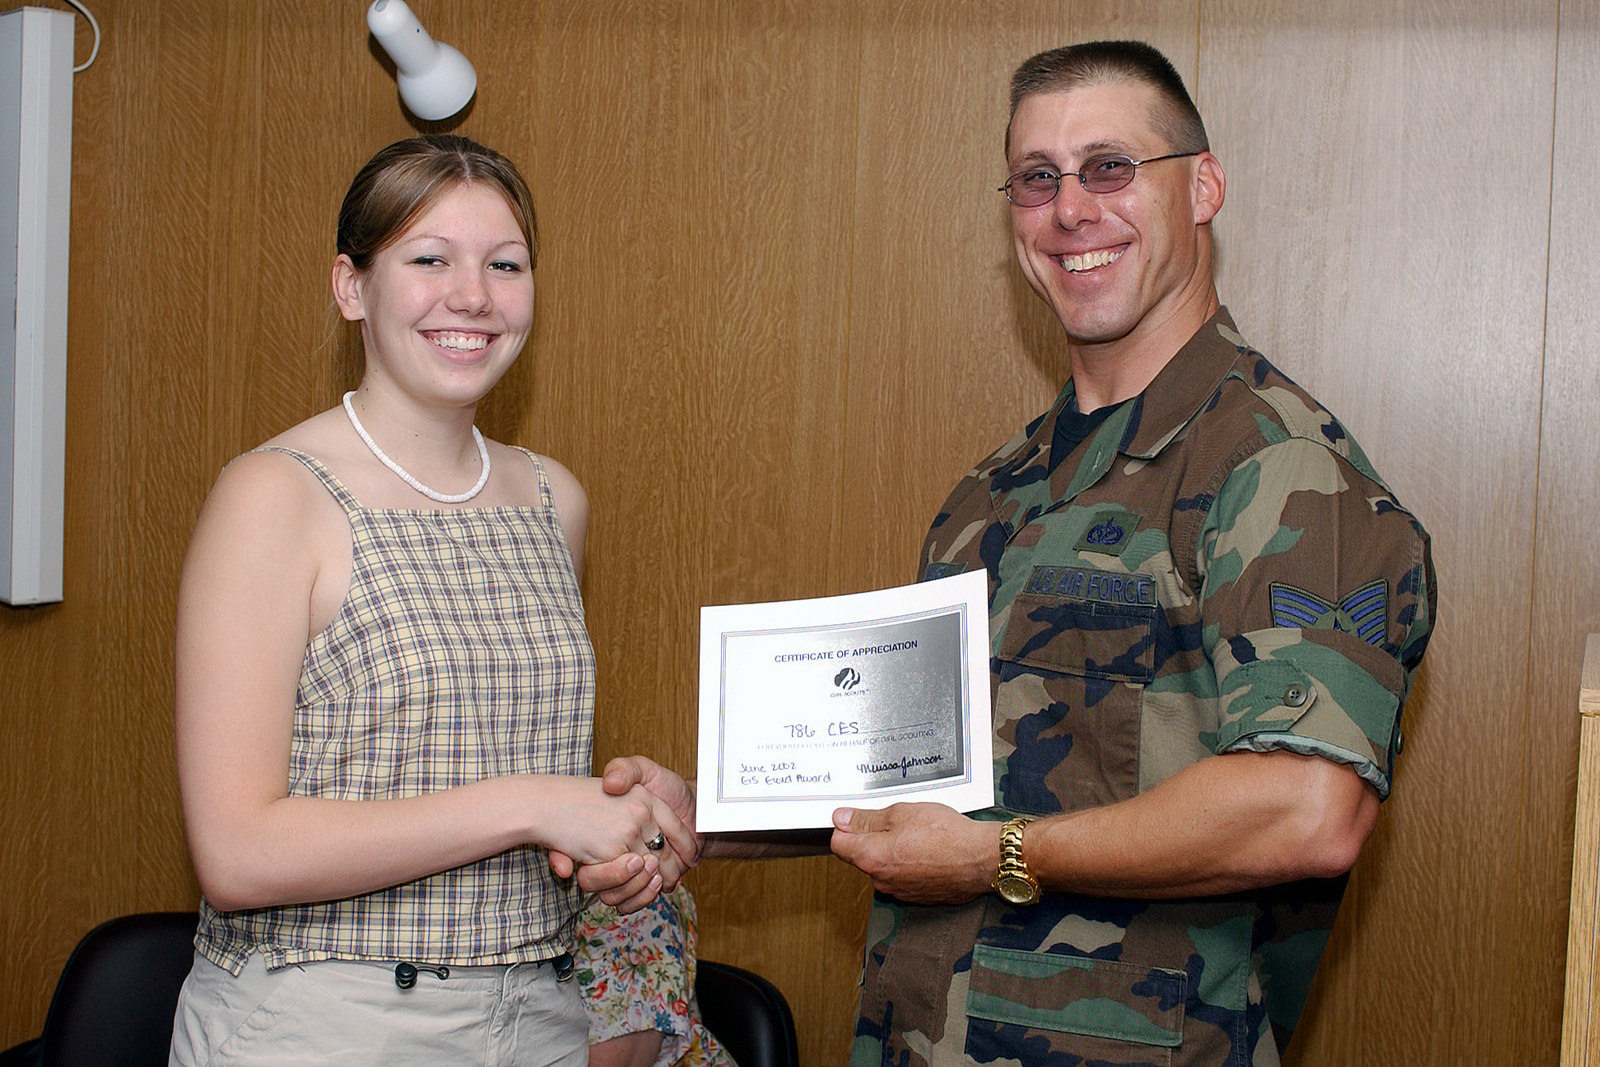 Melissa Johnson (left), a former student atKaiserslautern High School, Germany, presents US Air Force (USAF) Technical Sergeant (TSGT) Michael Kunkel, 786th Civil Engineering Squadron (CES) with a certificate of appreciation for his help with raising school supplies for a Bosnian Schools